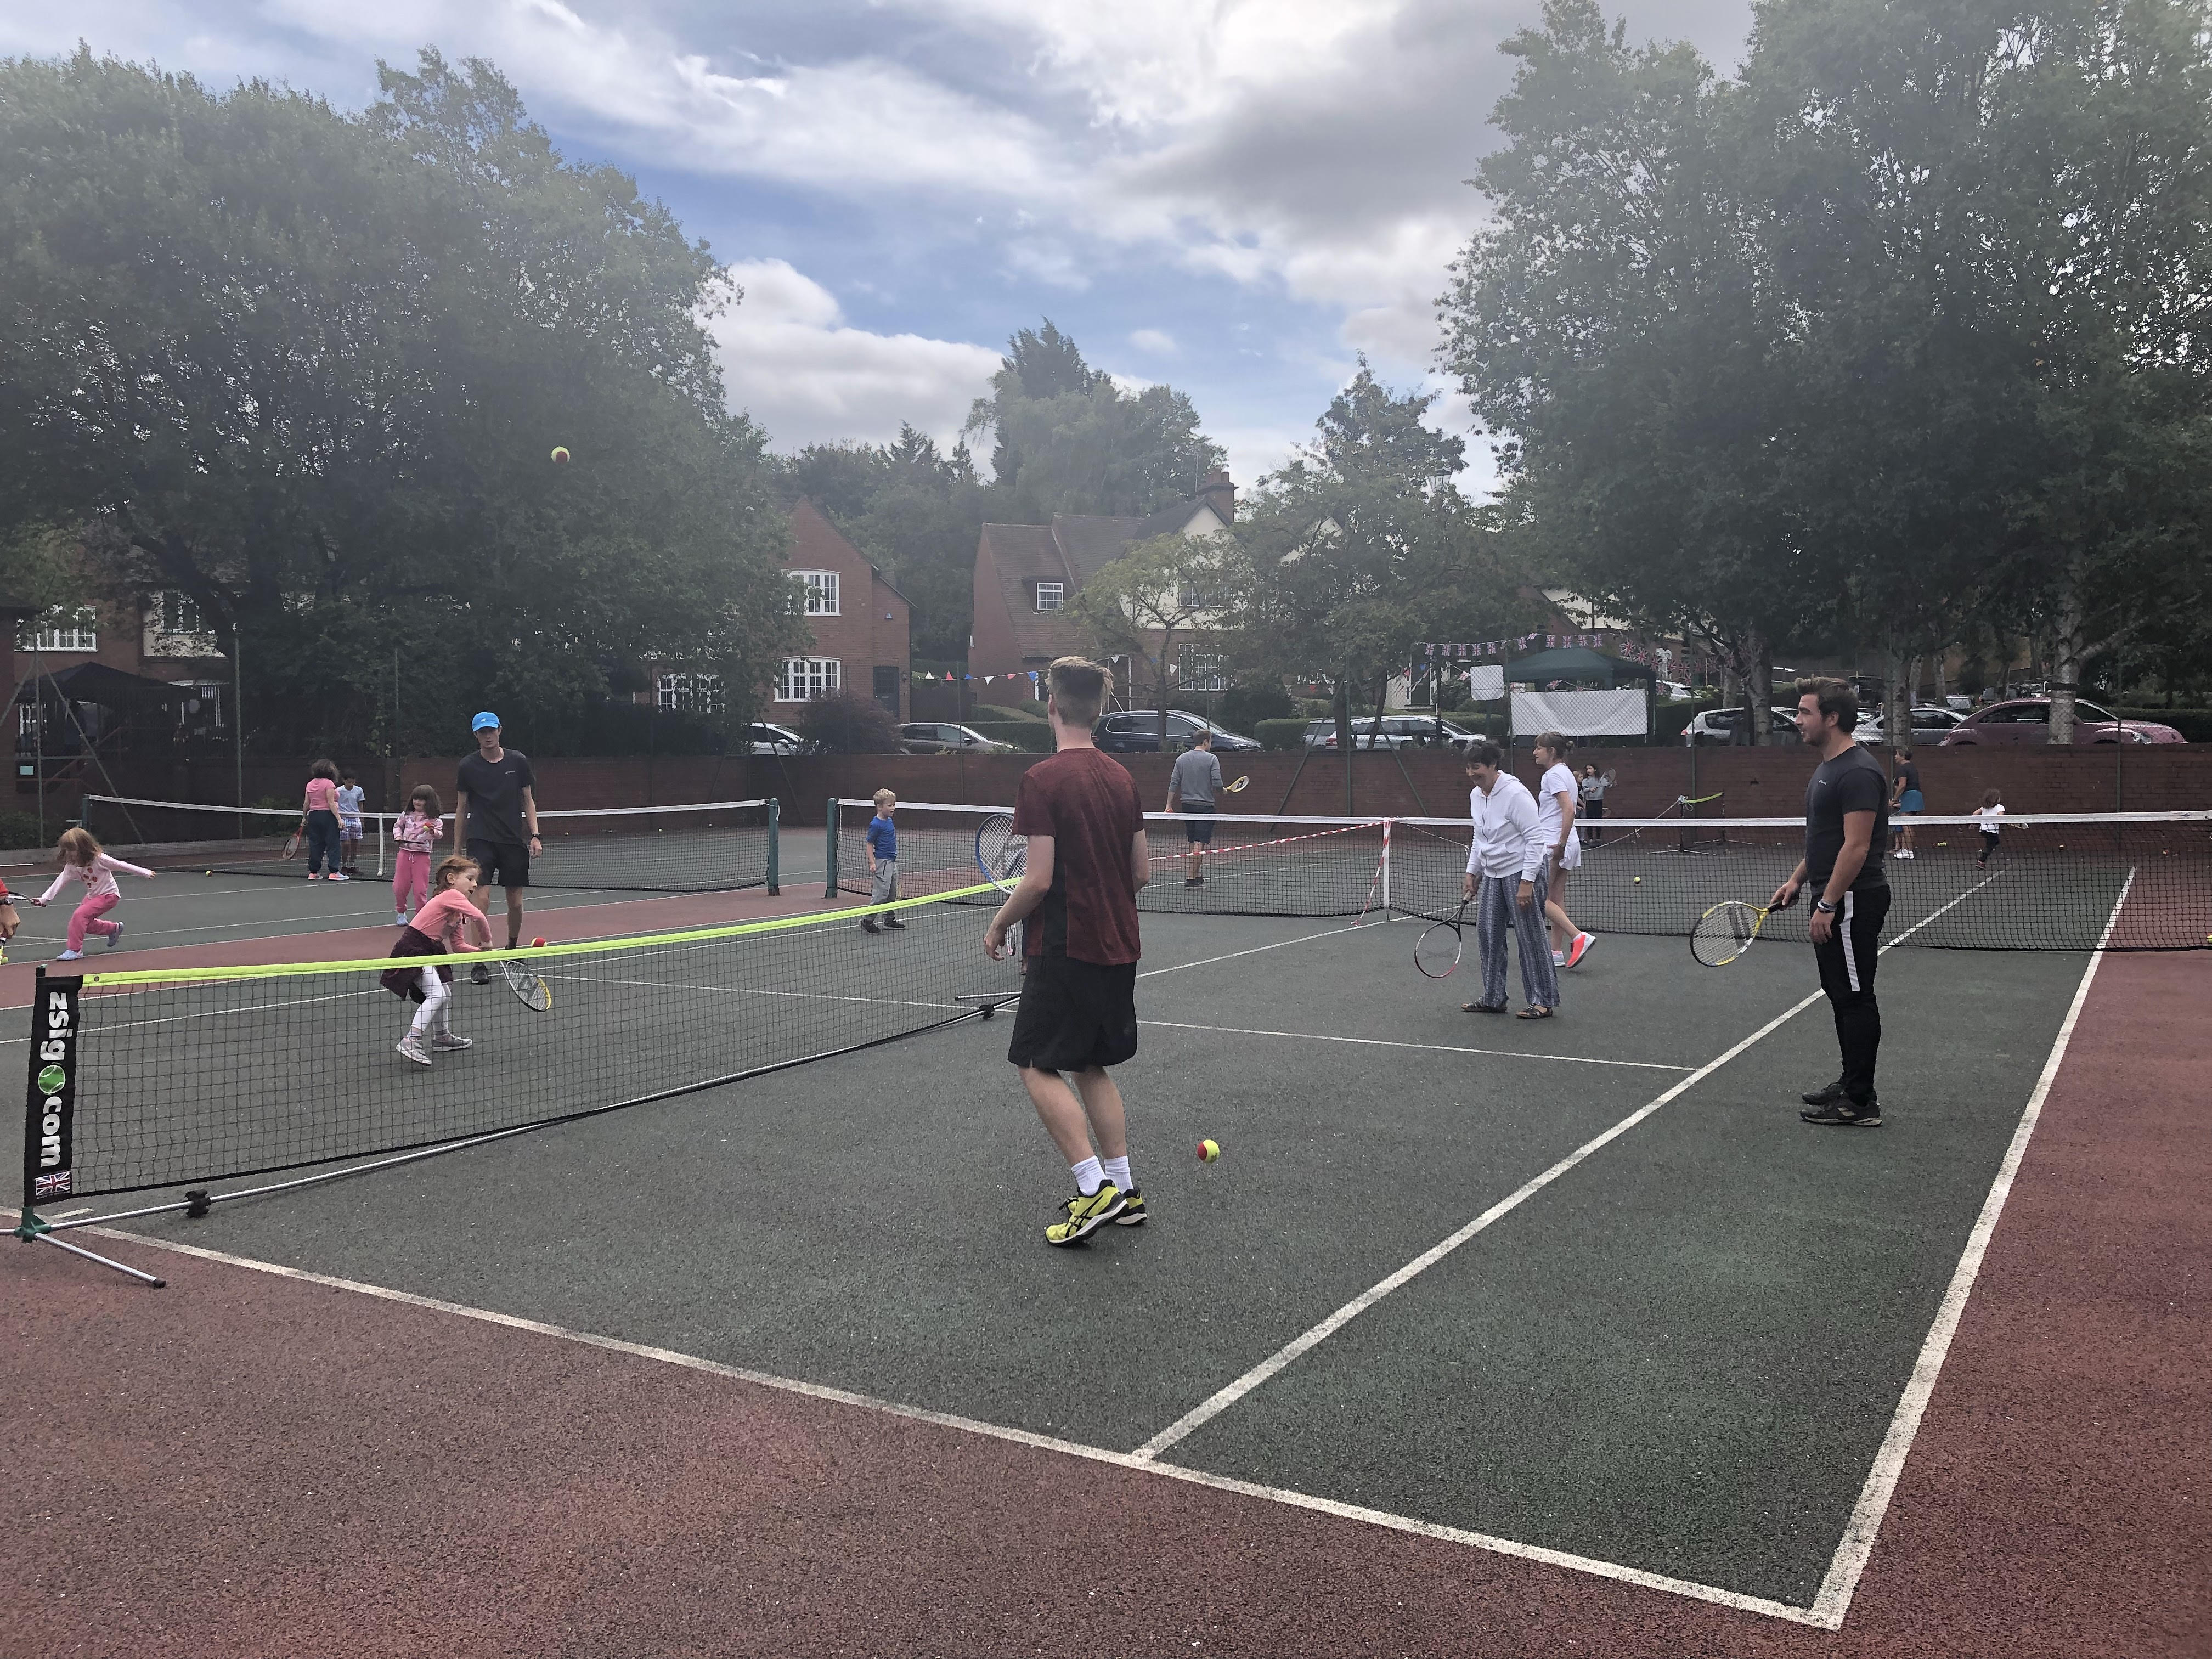 Busy Courts